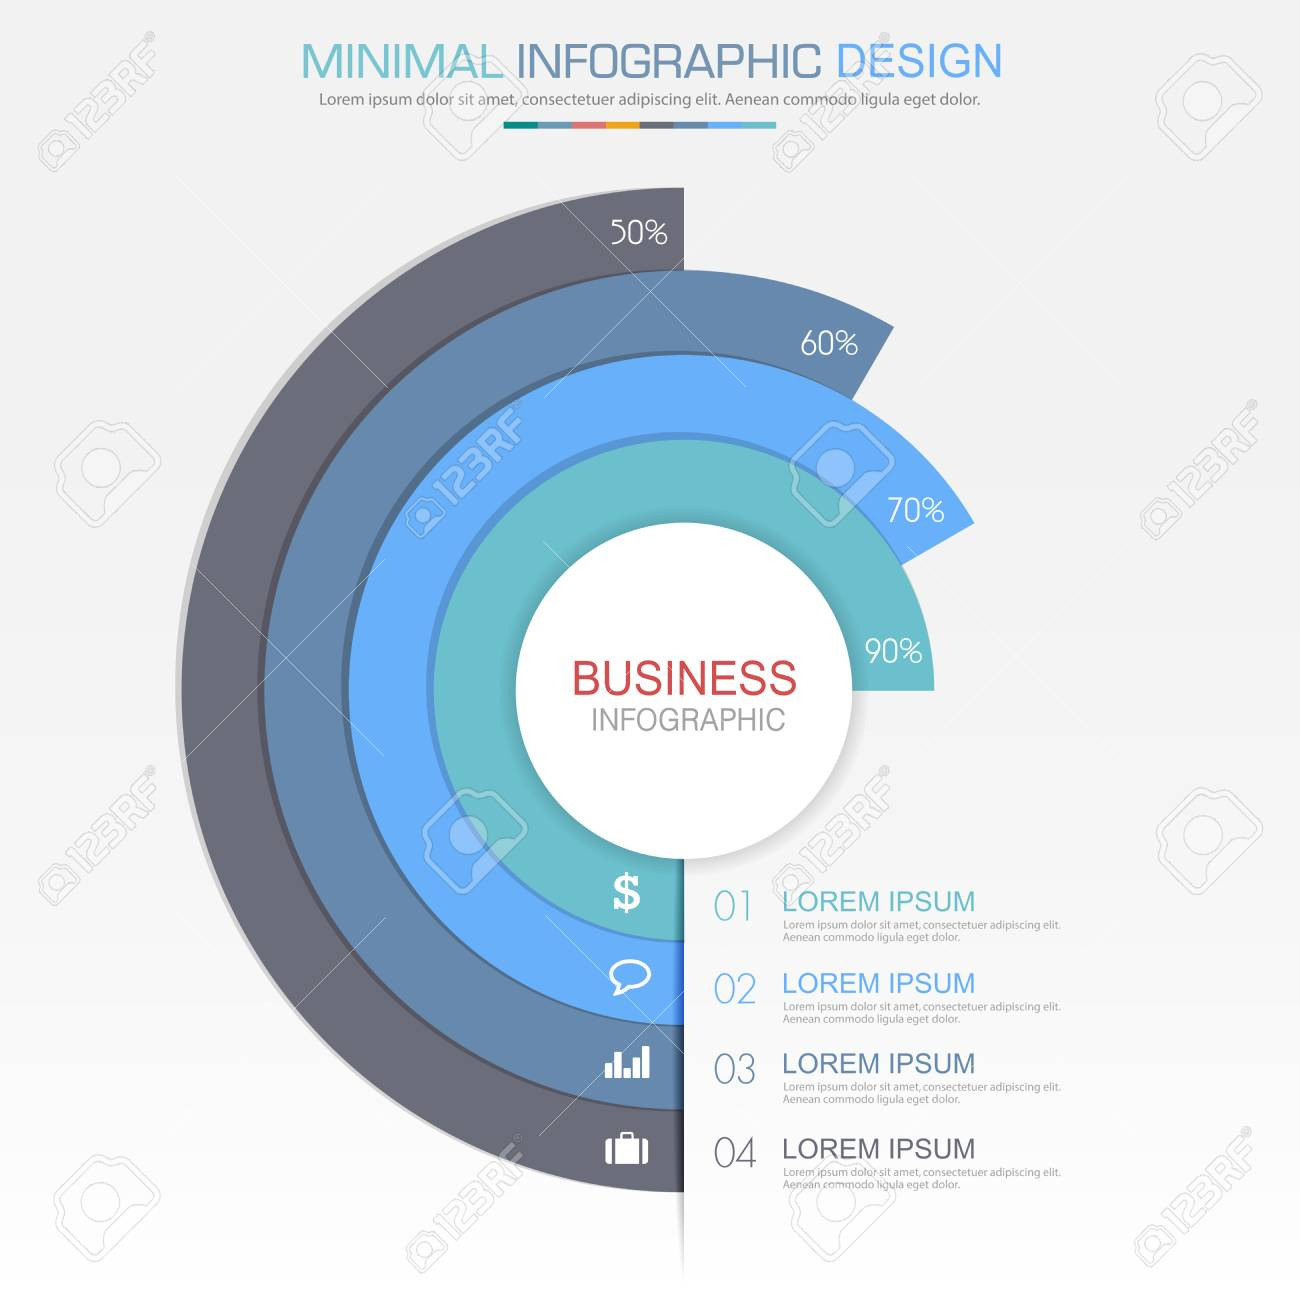 Circle infographic elements with business icon on full color circle infographic elements with business icon on full color background circle process or steps and options ccuart Choice Image